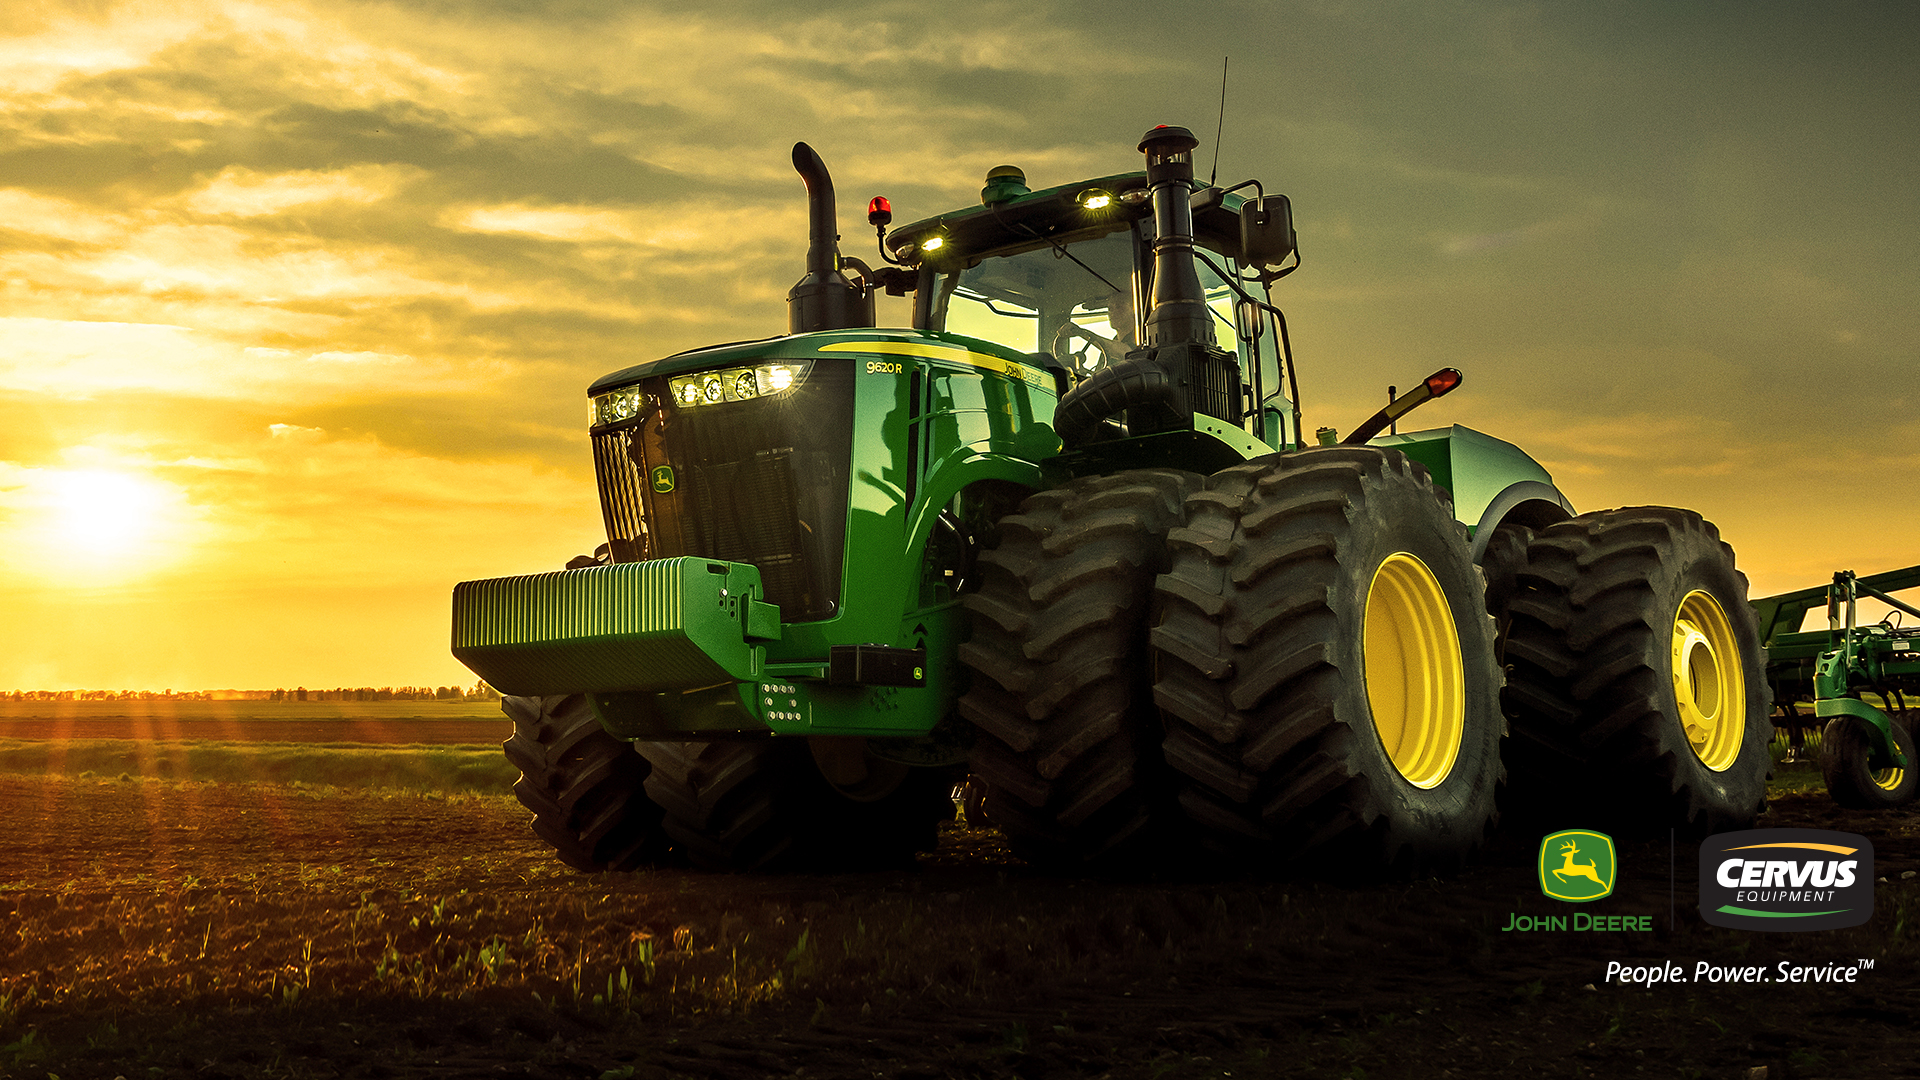 Cervus Equipment Wallpaper | John Deere Wallpaper ...